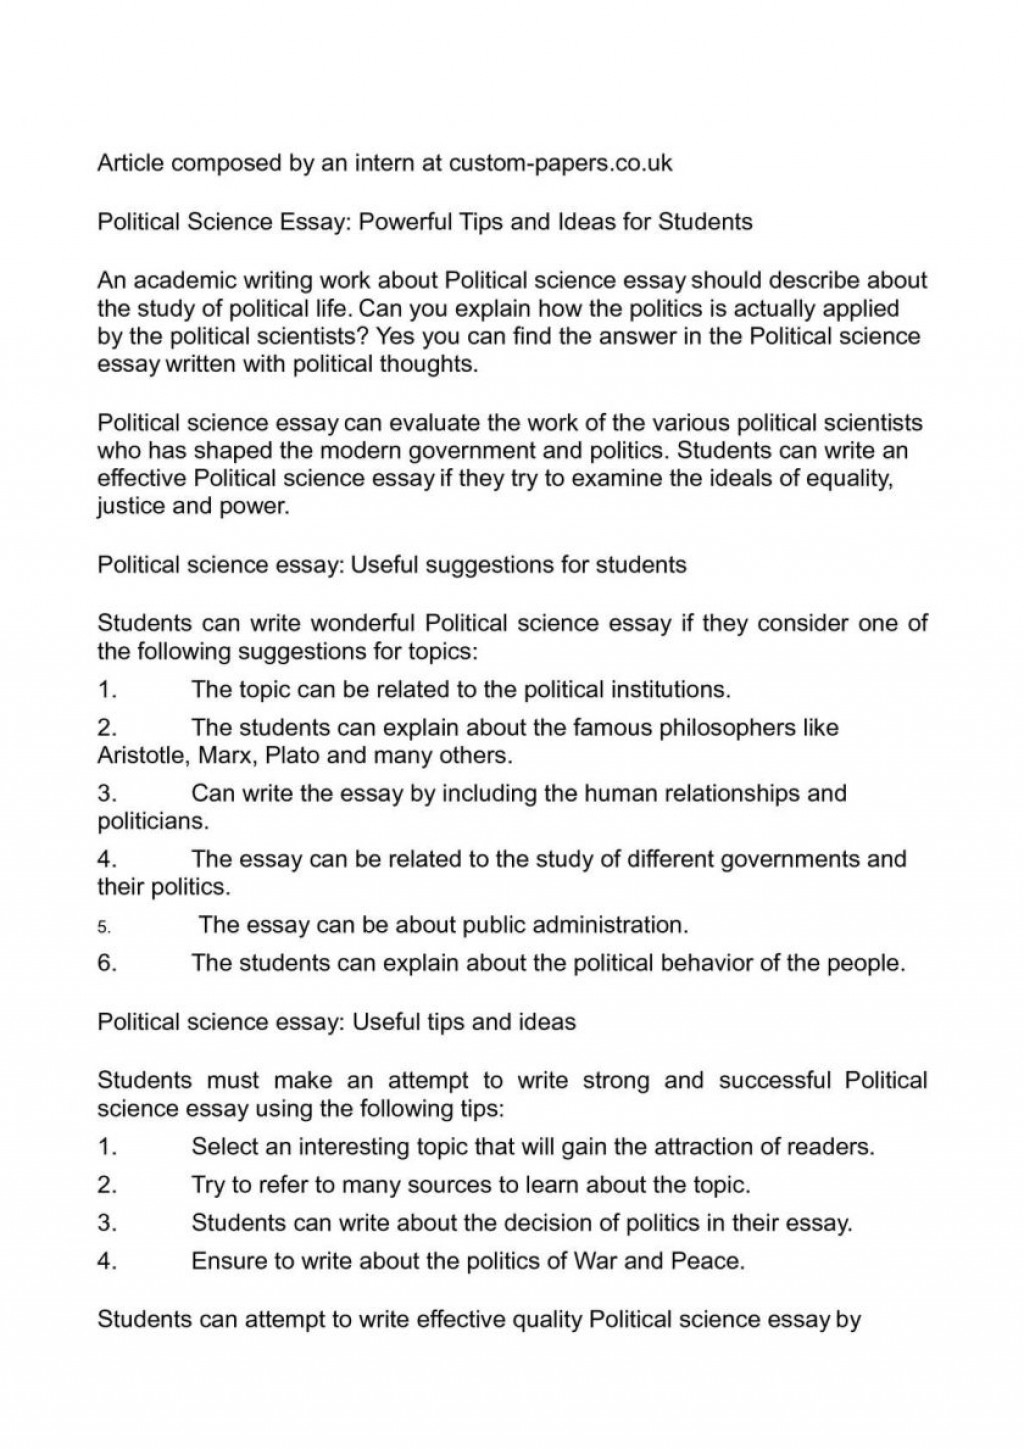 017 Essay Macbeth Ideas Science Argumentativecs Good Photo Easy To Write Abo About Research Paper Personal Descriptive Persuasive College Synthesis Informative Narrative 840x1189 Fearsome Topics A On Fun Large